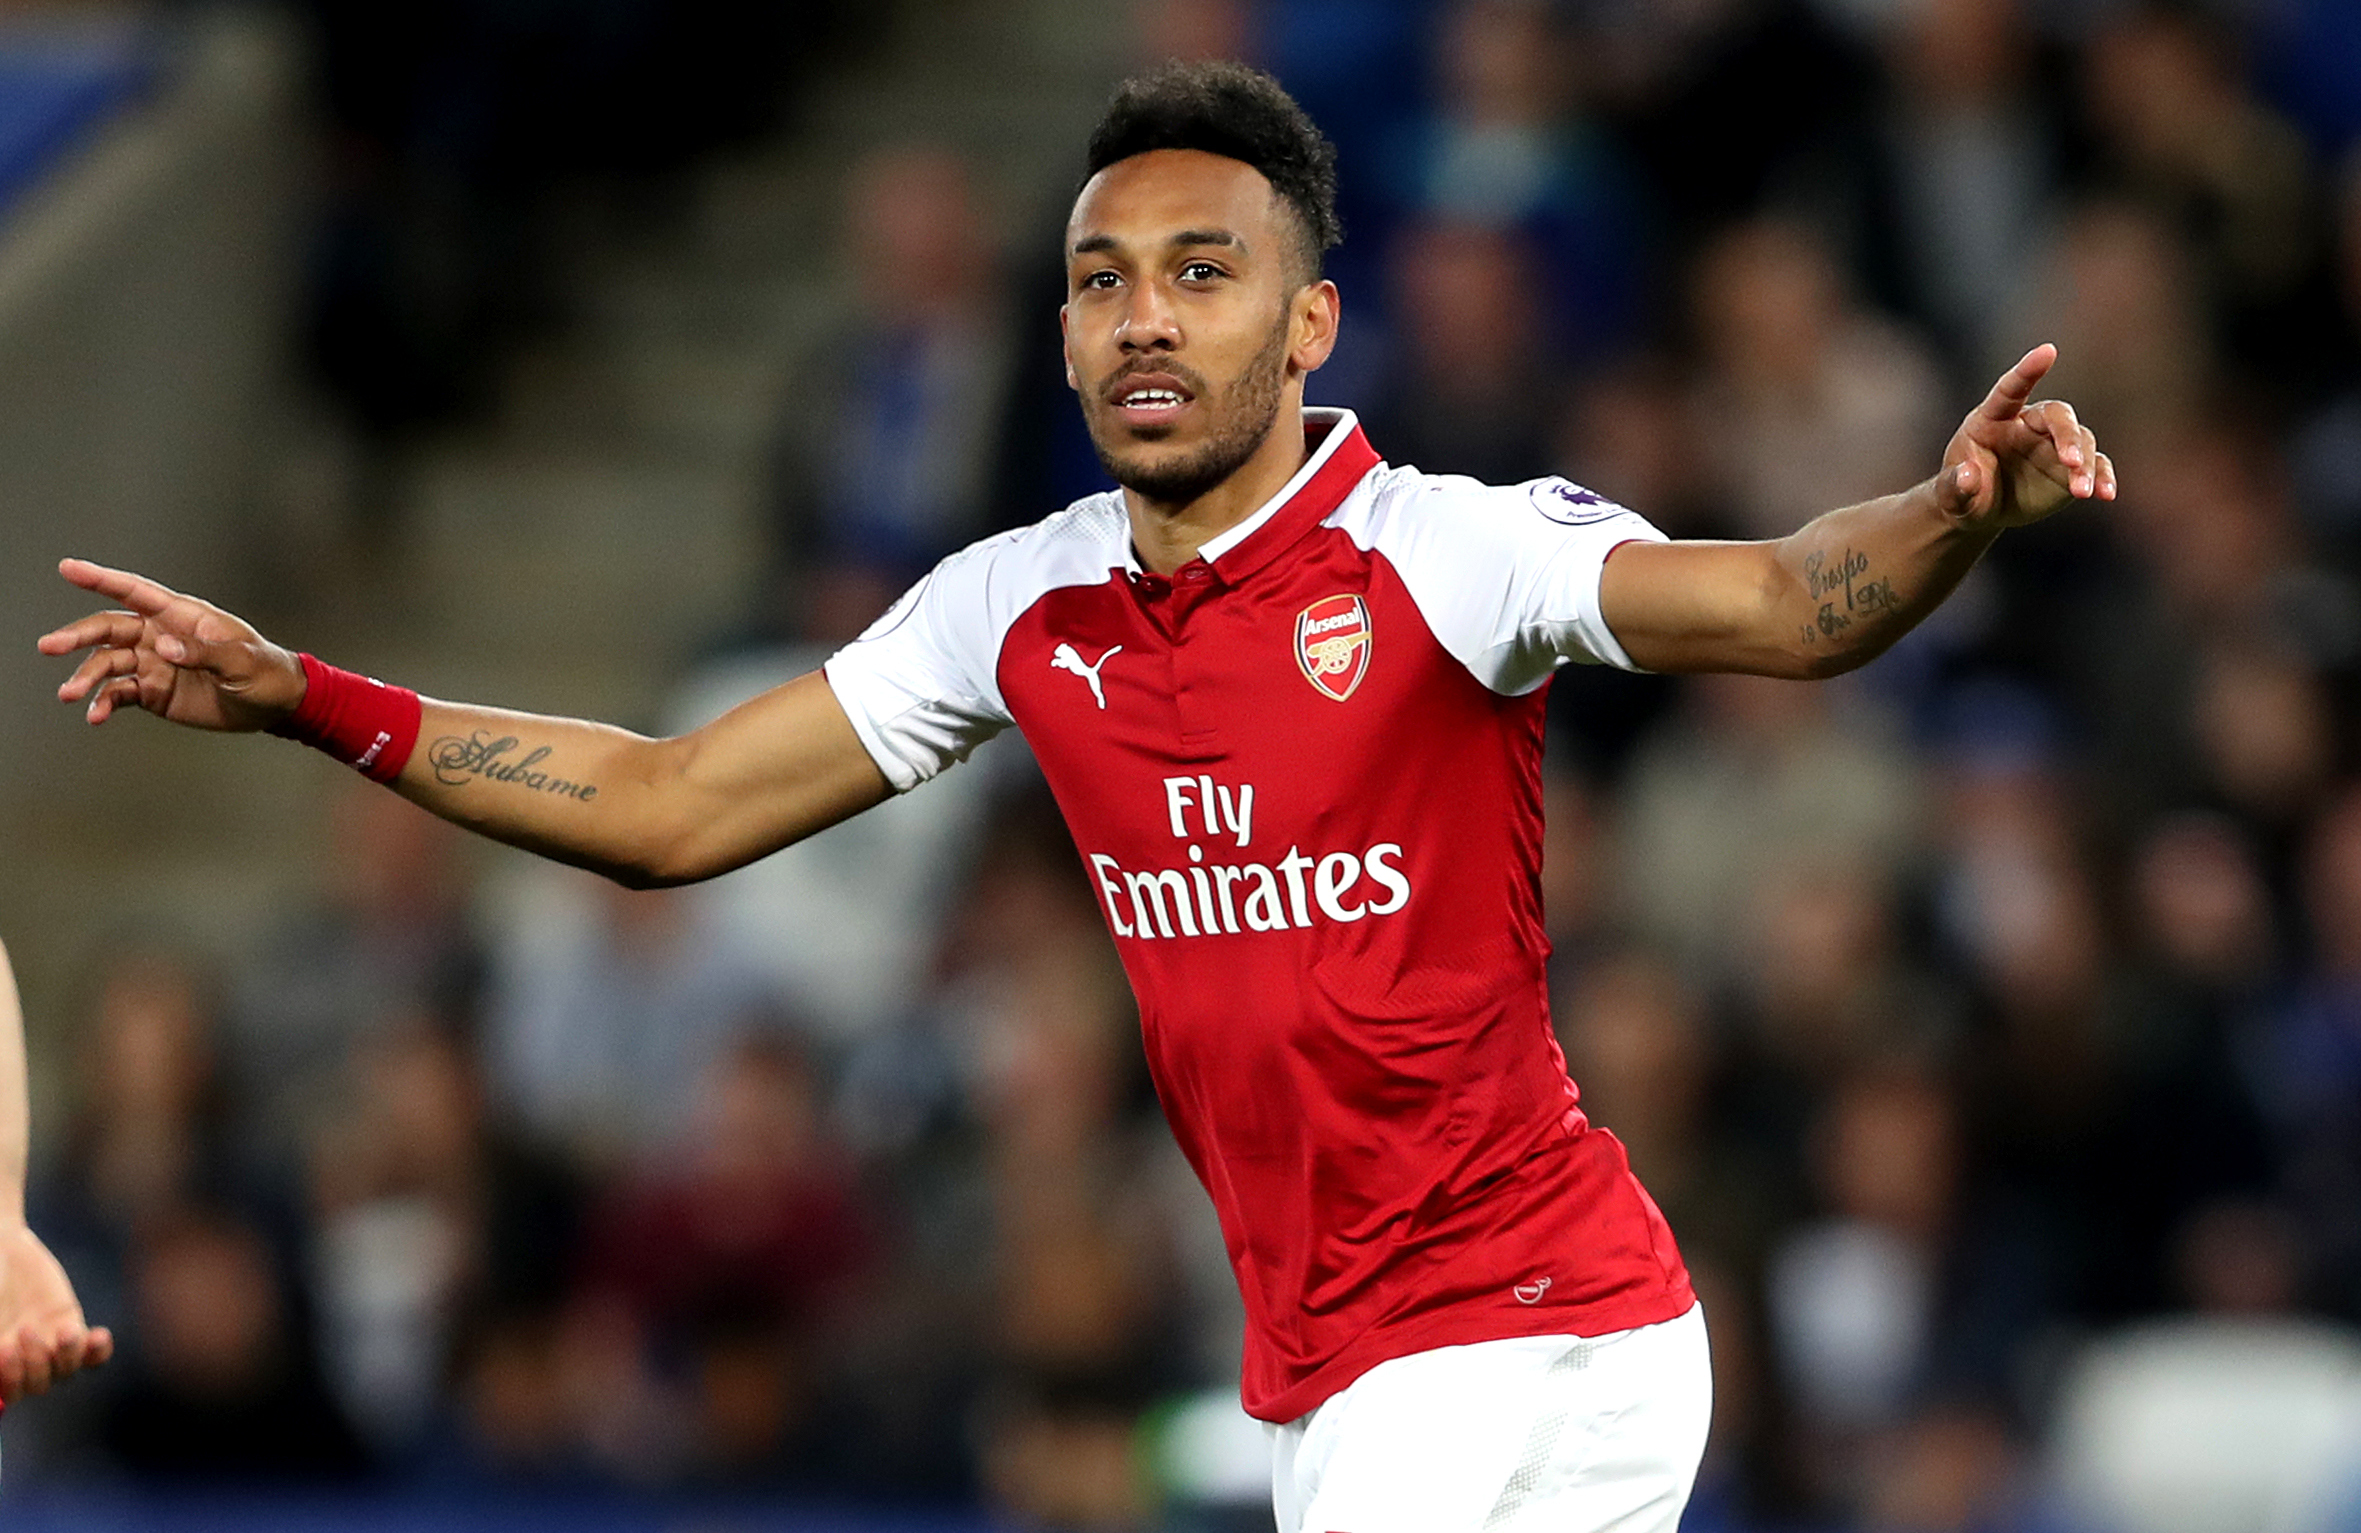 Arsenal face paying huge bonuses to Aubameyang - including £15M loyalty deal